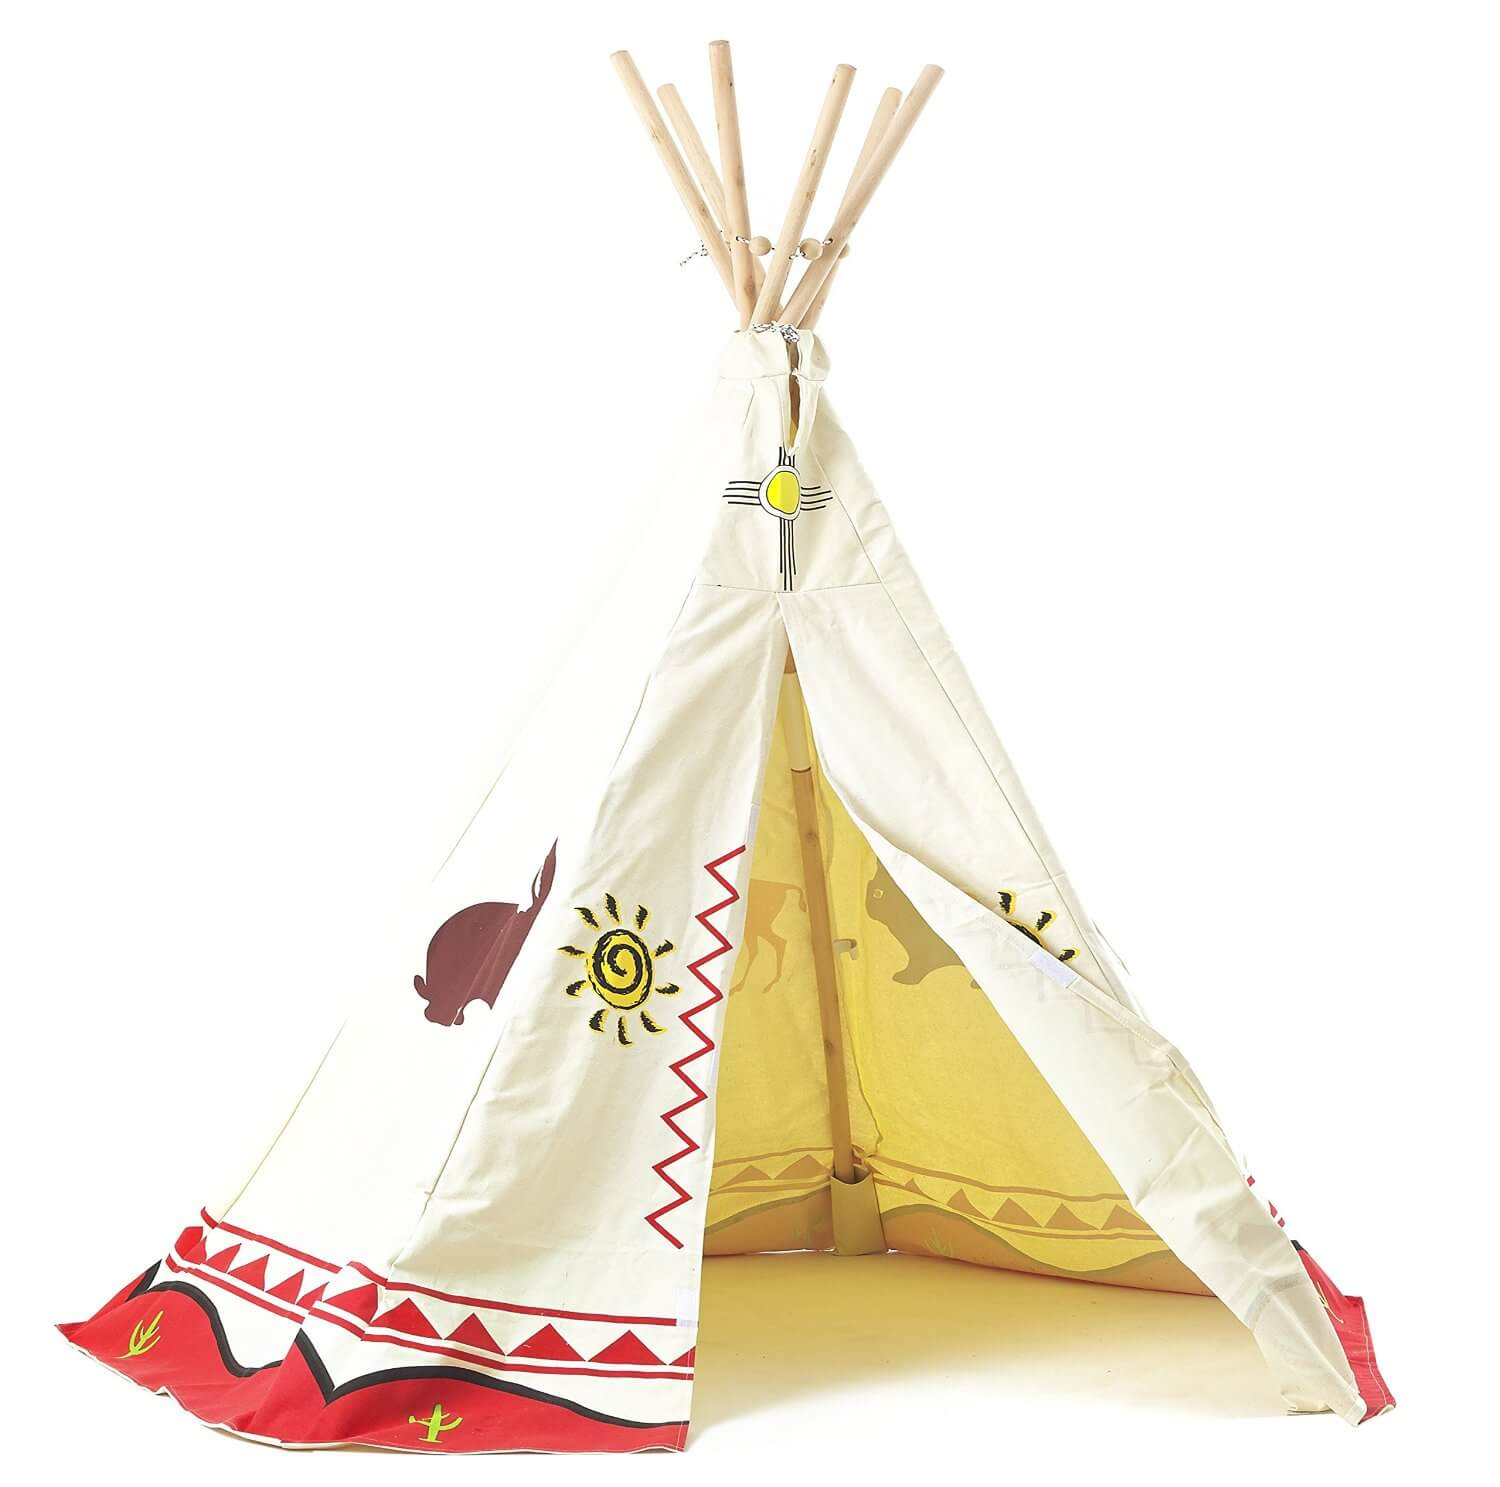 81tkrxplnul sl1500 tipi zelt kinderzimmer. Black Bedroom Furniture Sets. Home Design Ideas